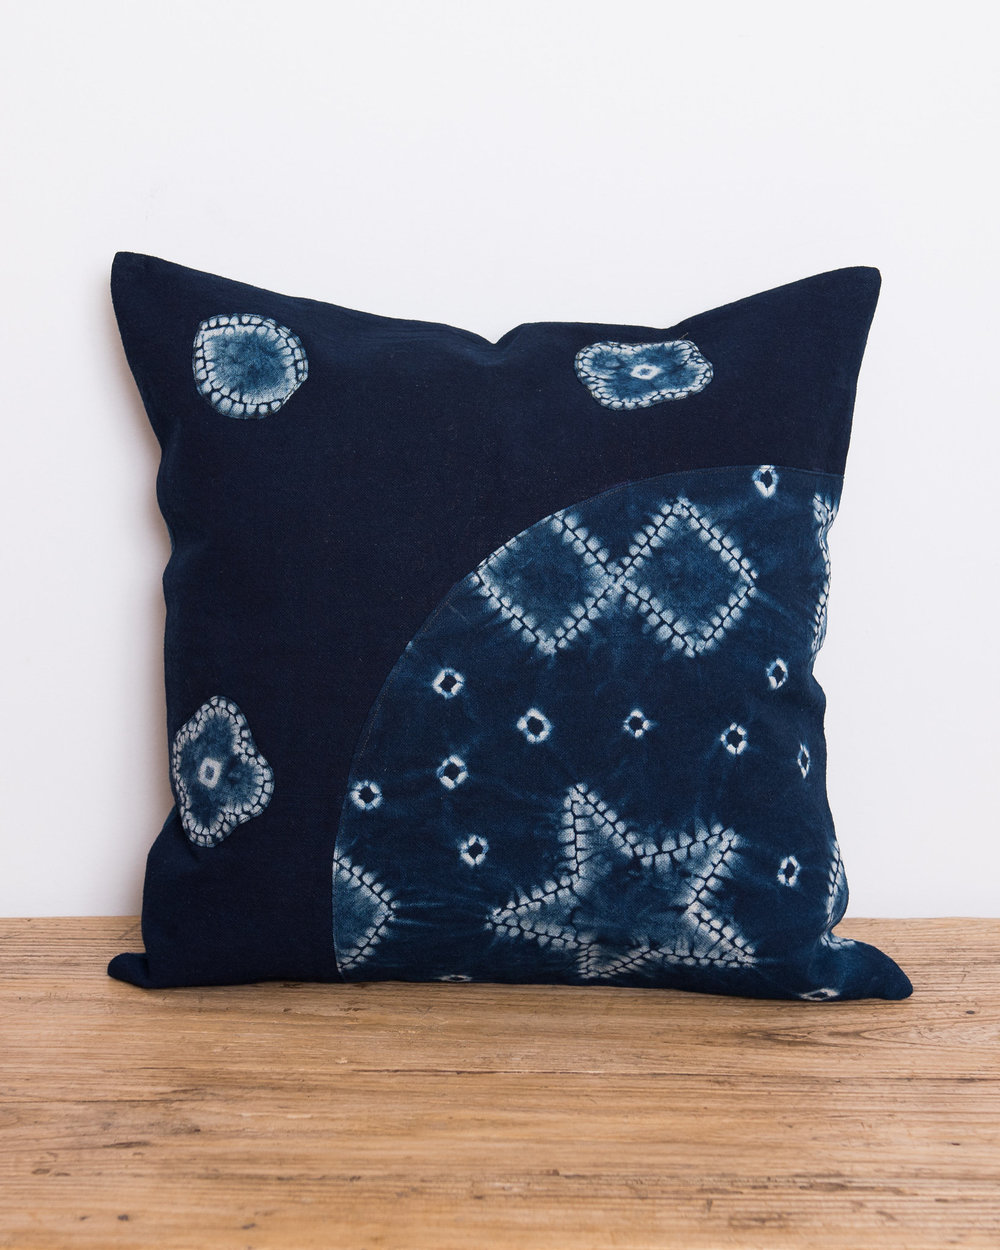 Indigo Batik Pillows